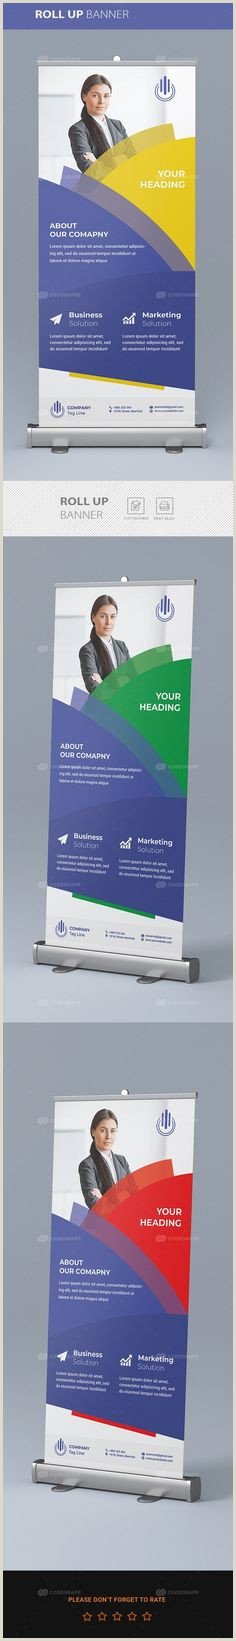 Roll Up Standee 20 Best Roll Up Banner Design Images In 2020